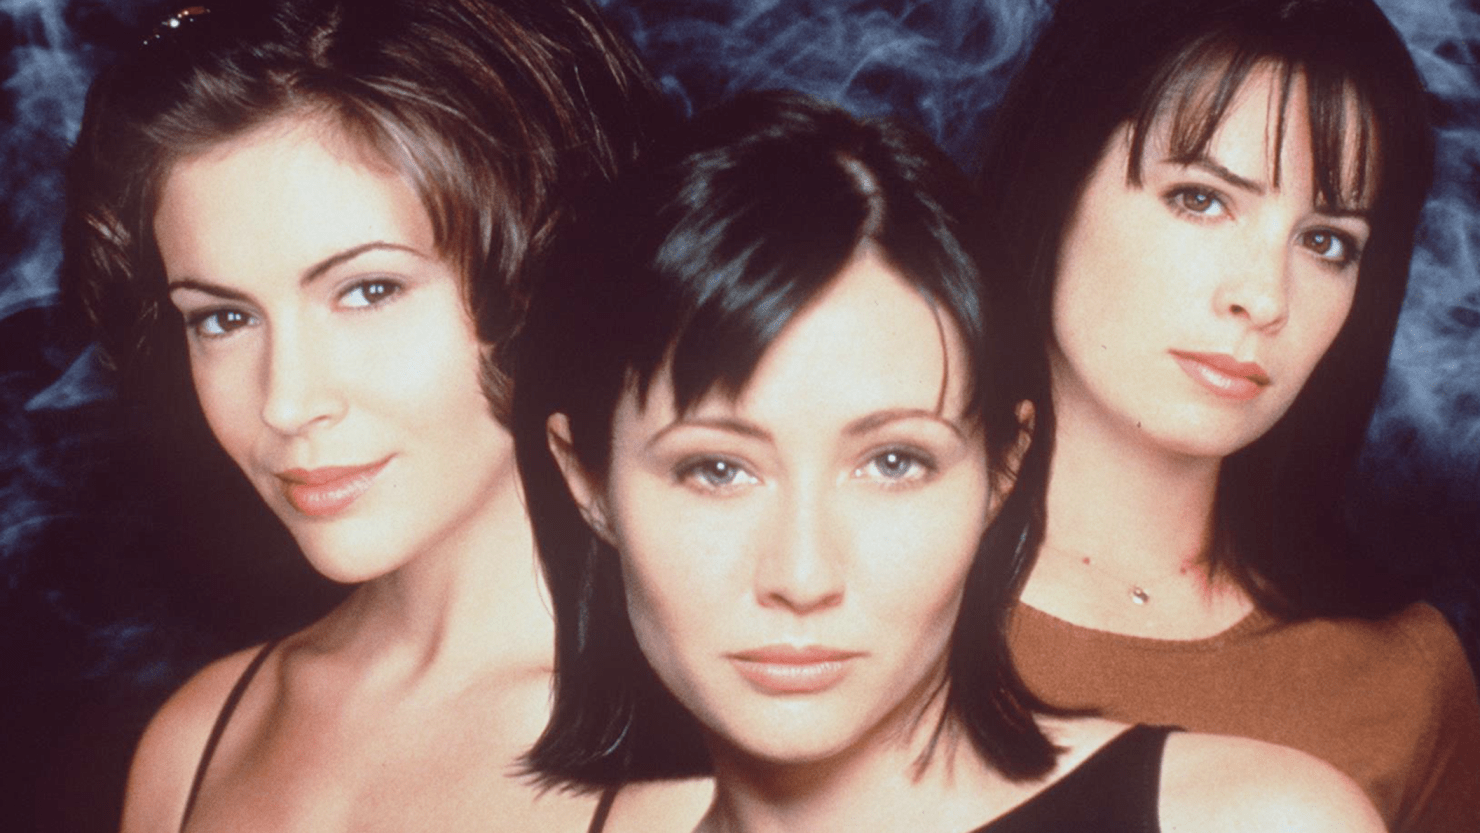 The 'Charmed' Reboot Cast Its 3 Leads and It's Way More Diverse Than the Original